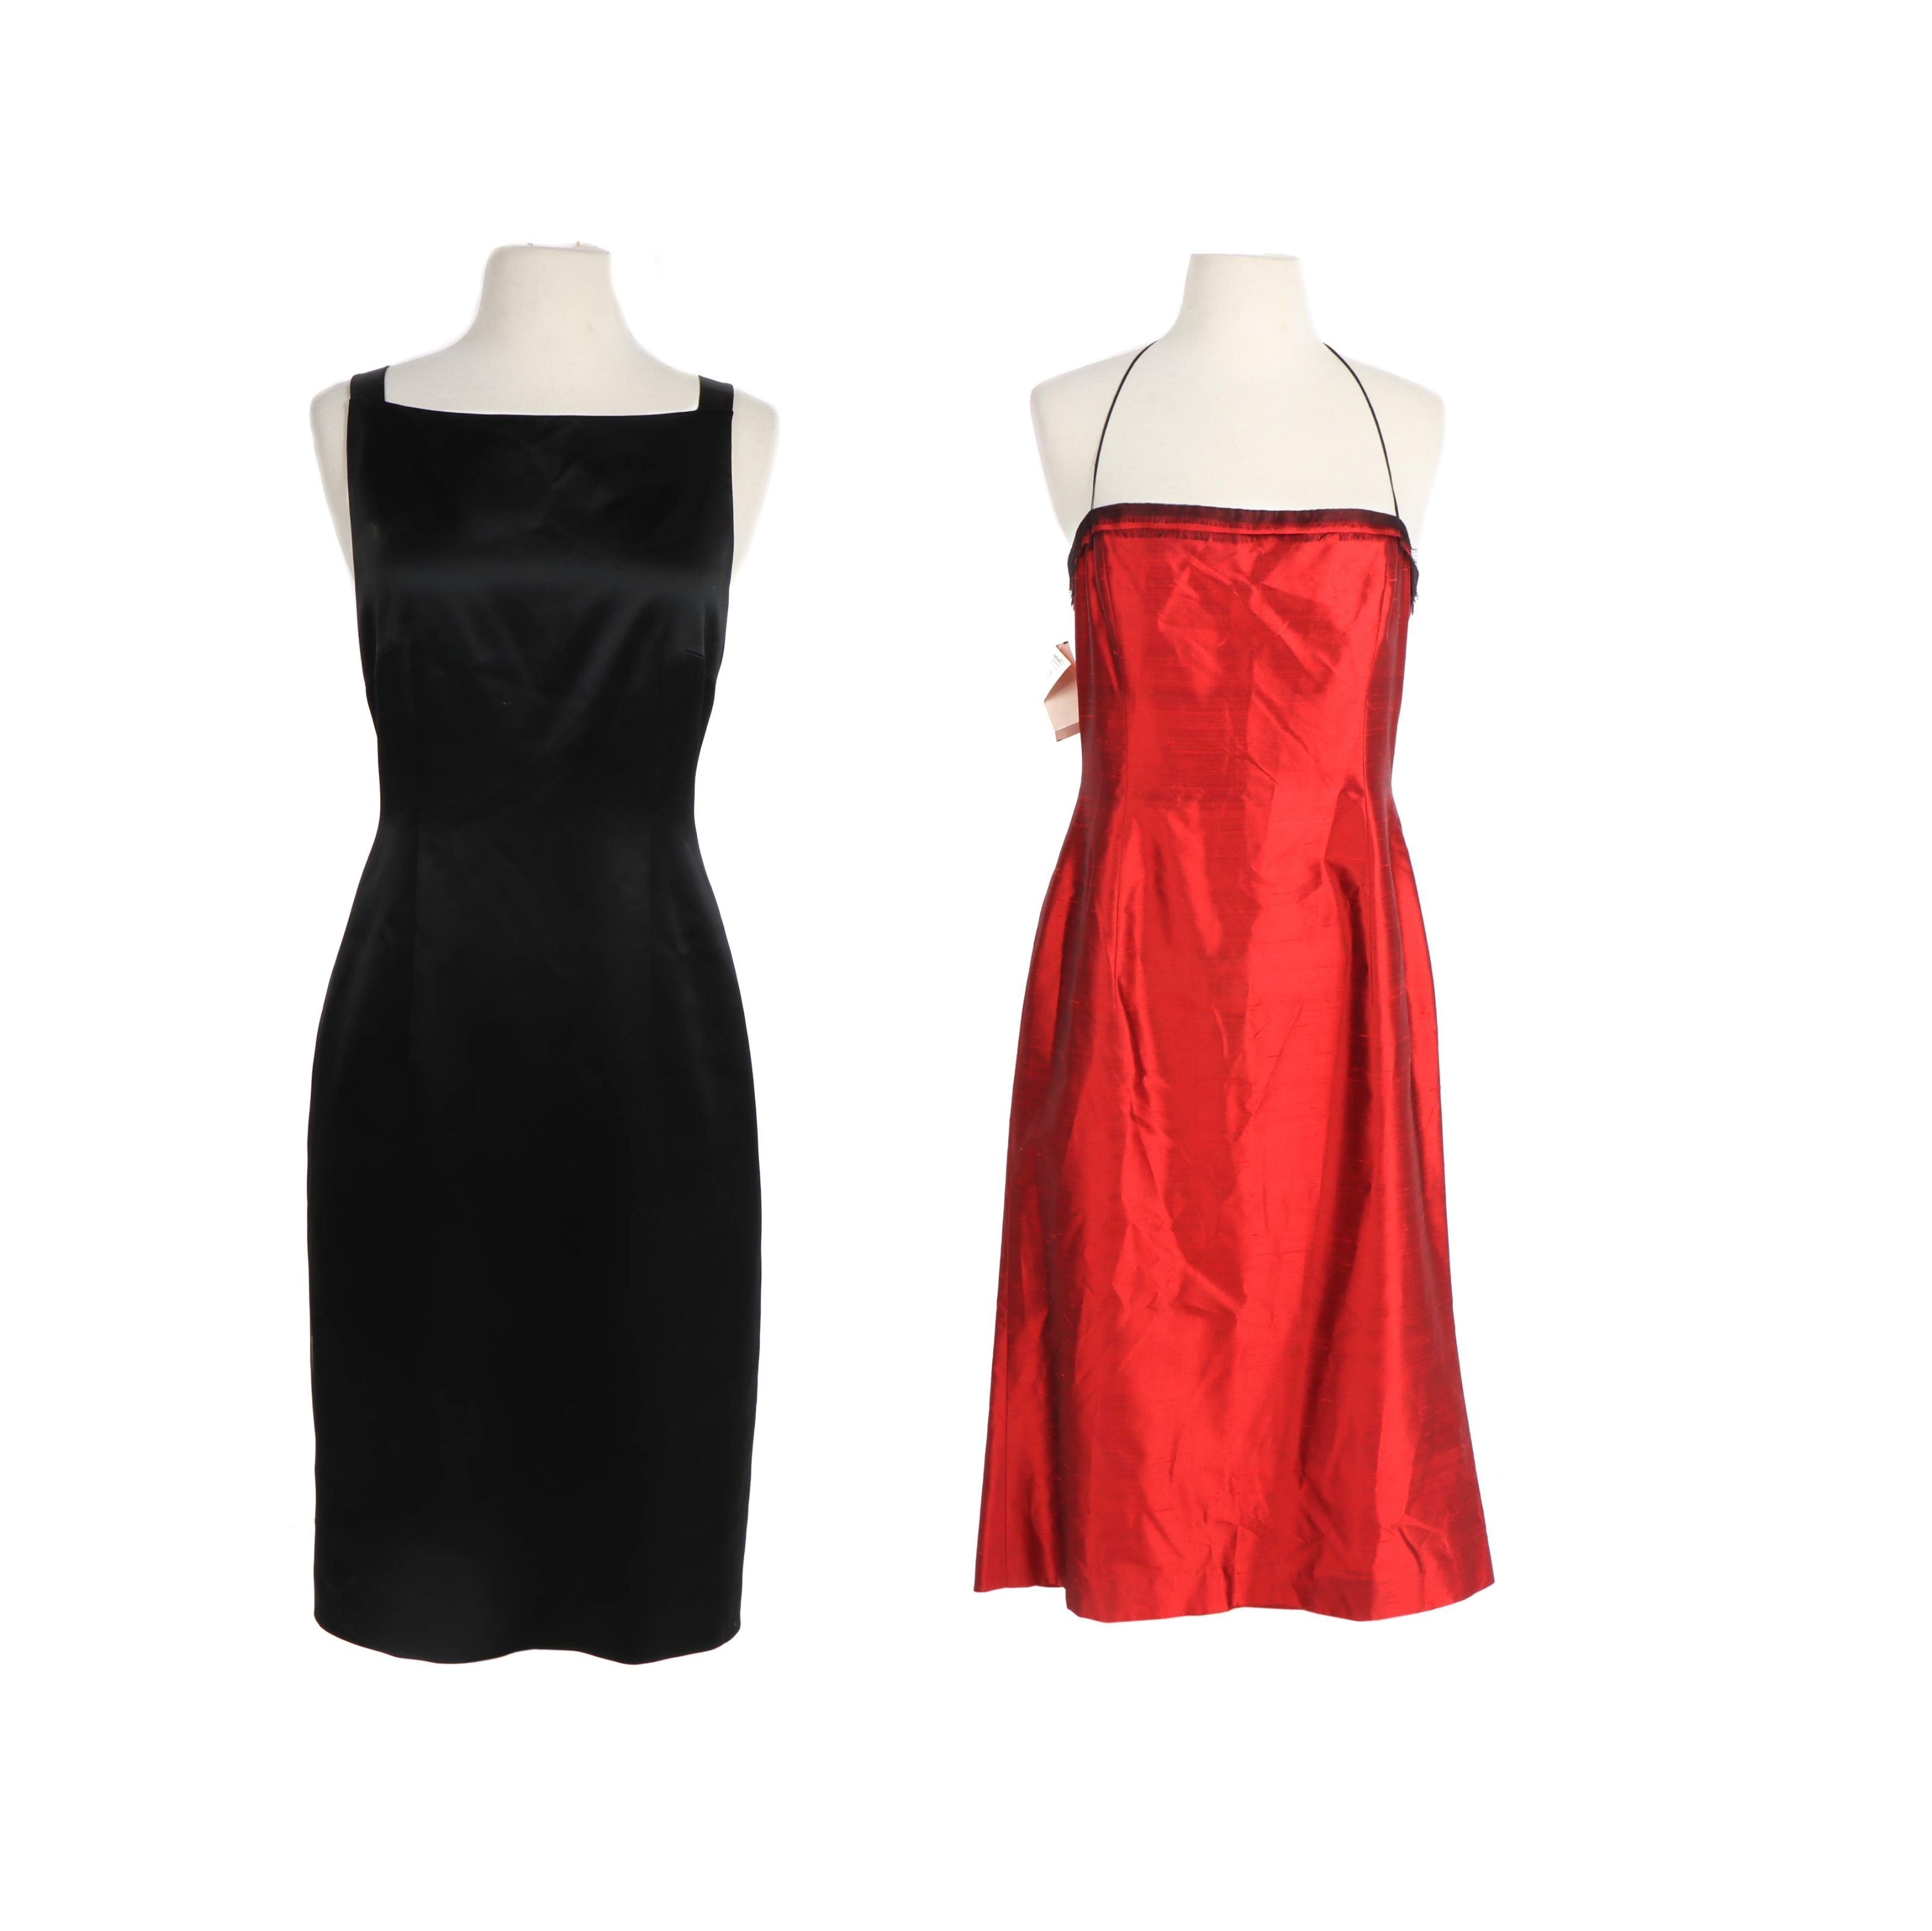 Tahari Black and Red Sleeveless Cocktail Dresses